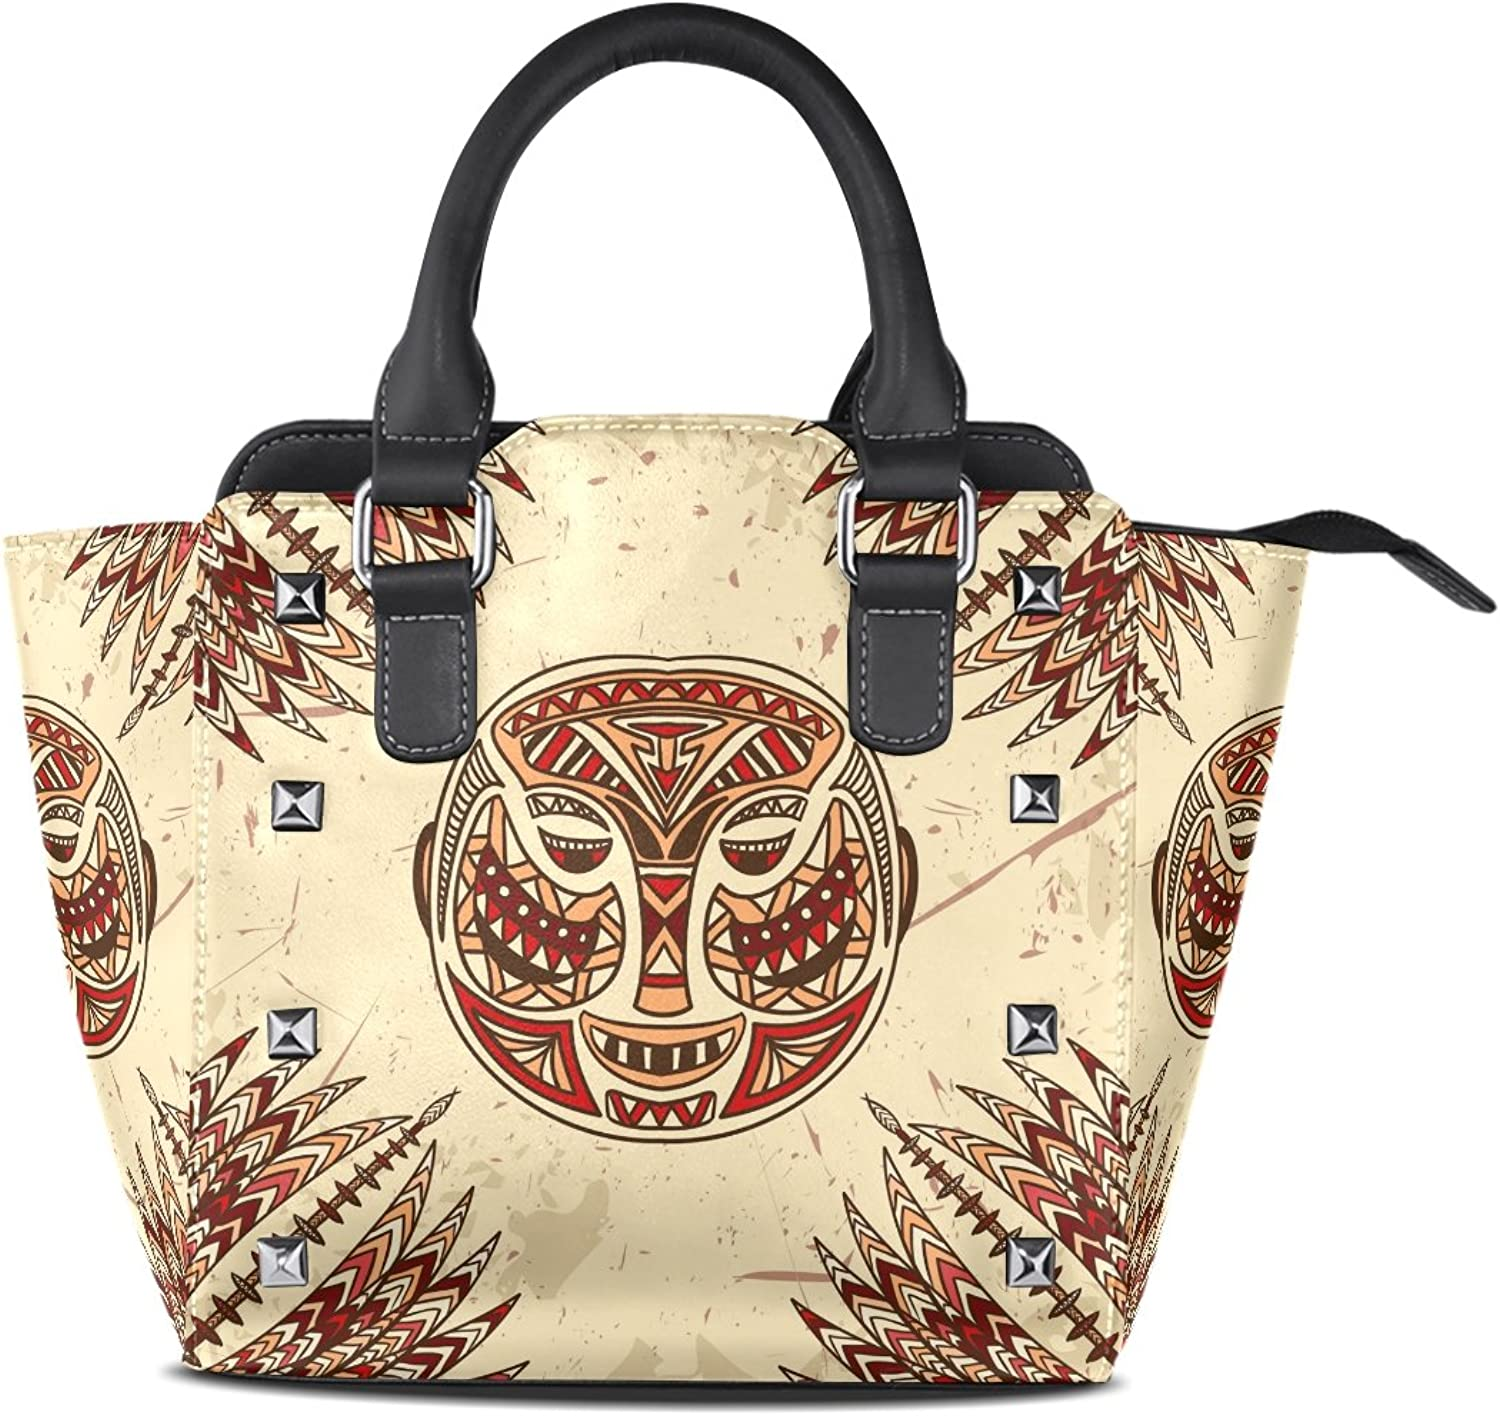 Sunlome Vintage Tribal Mask On The Grunge Print Handbags Women's PU Leather Top-Handle Shoulder Bags